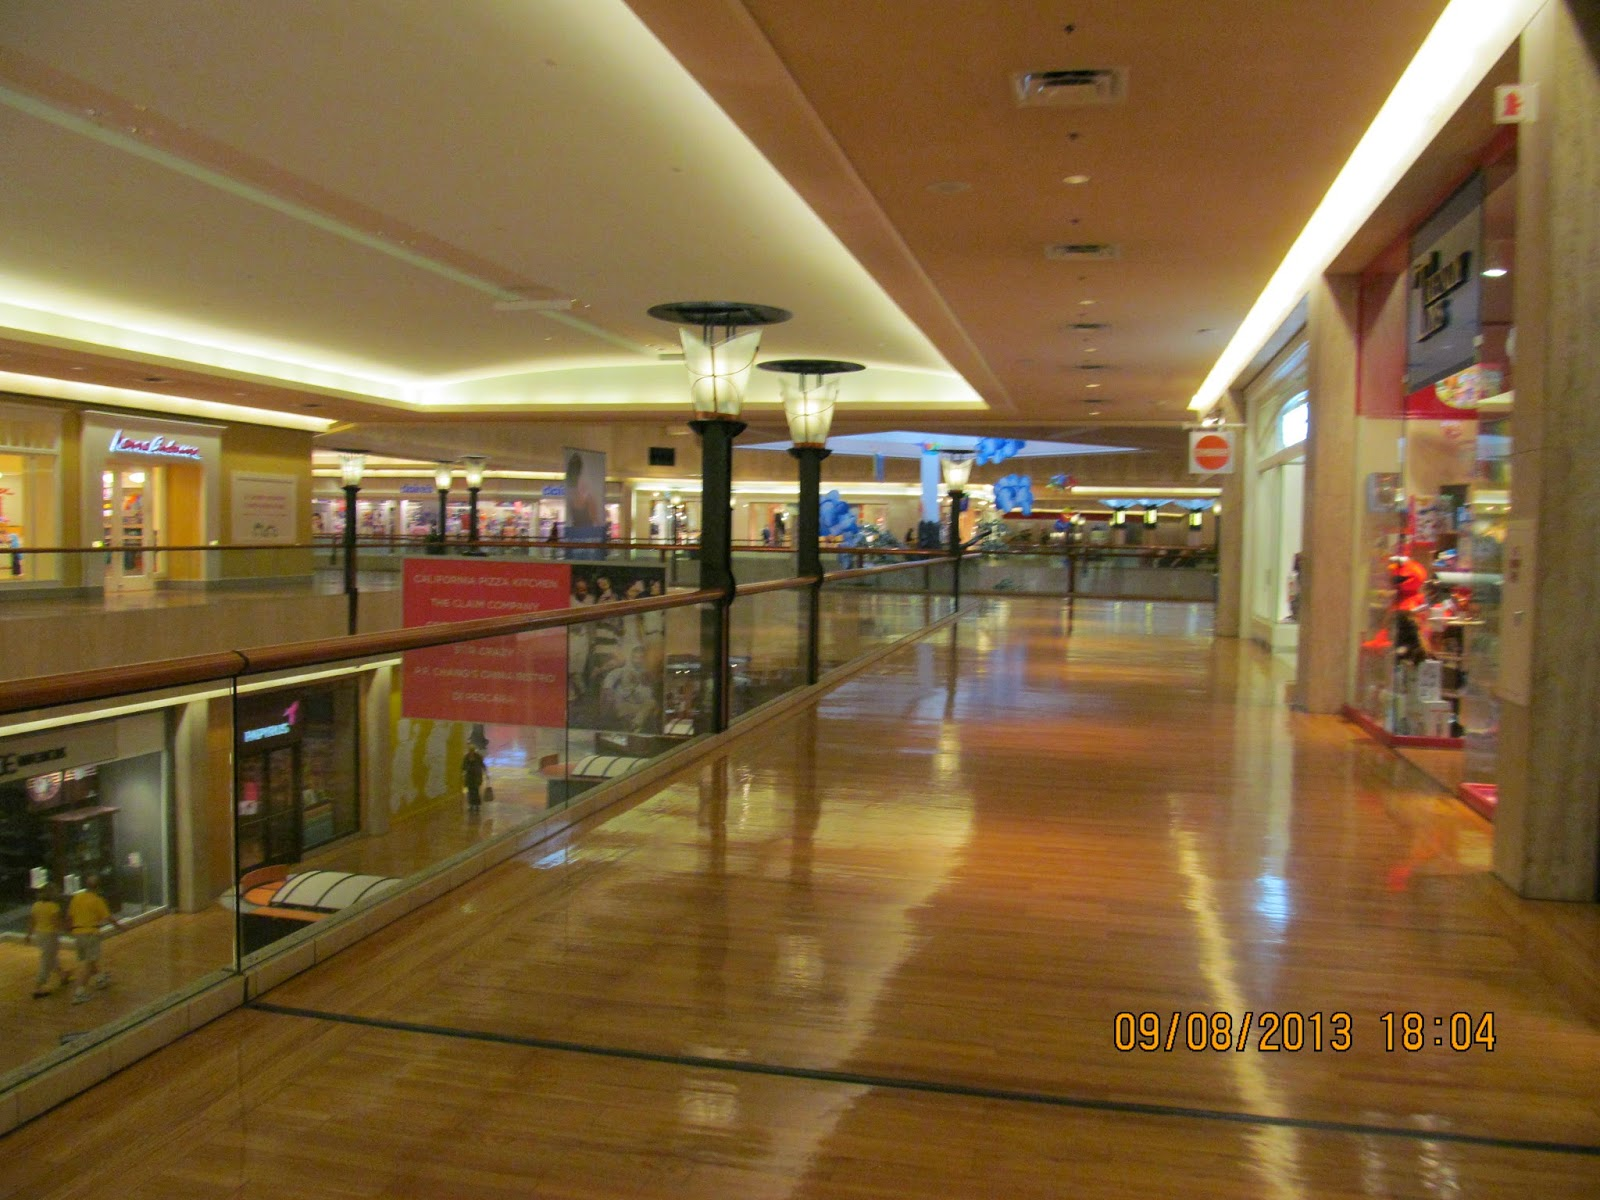 Northbrook Court is located in Lake Cook Rd., West Hwy. 41,Northbrook, IL More than stores.5/5(4).